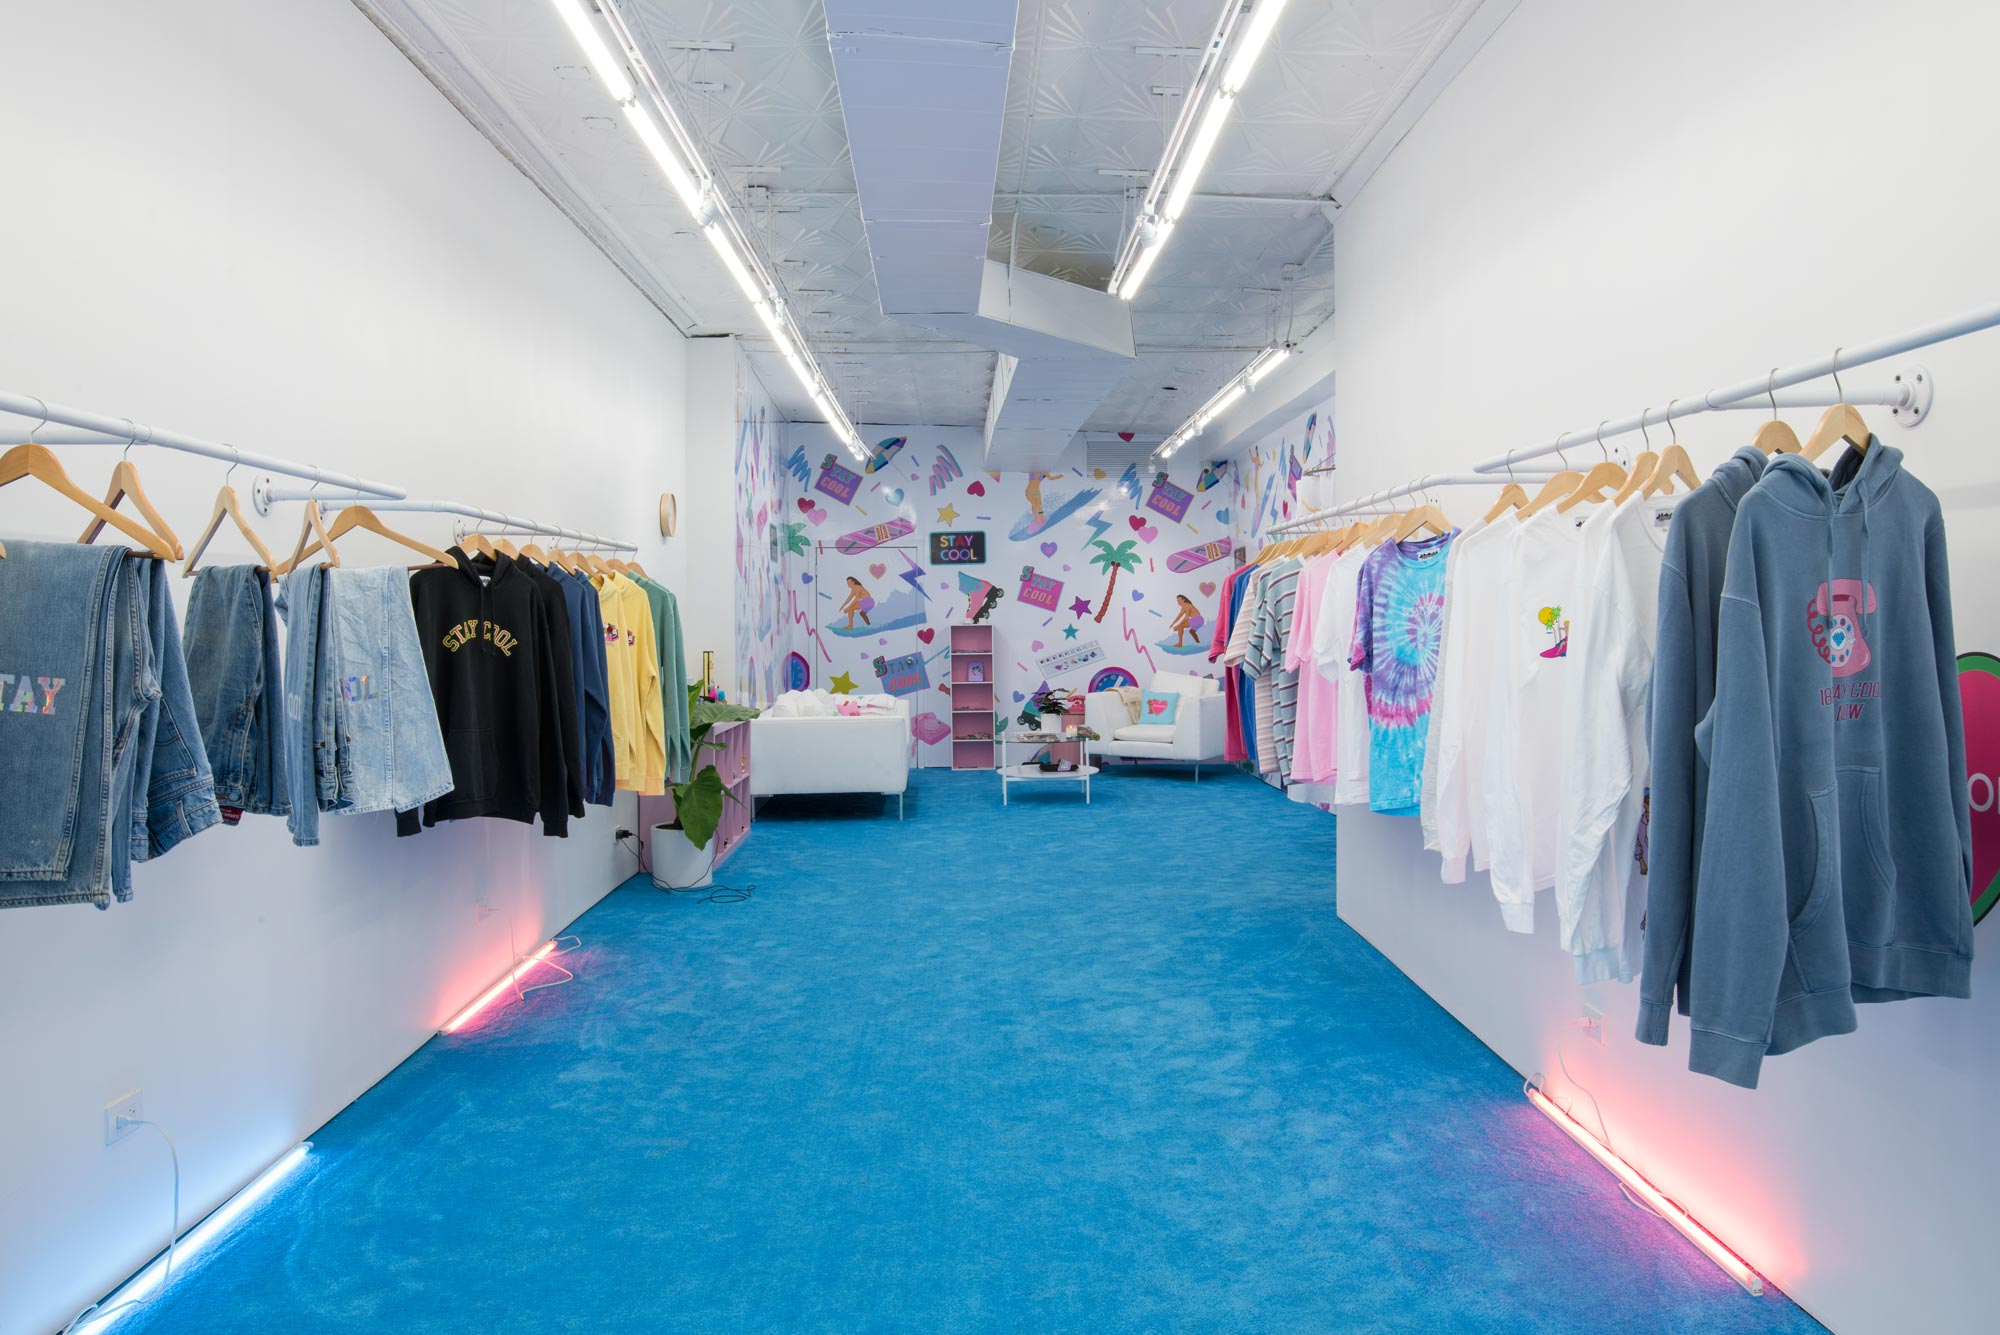 - ➝We designed a pop up store for the clothing brand StayCool, where the goal was to transform the space into an 80s inspired lounge.